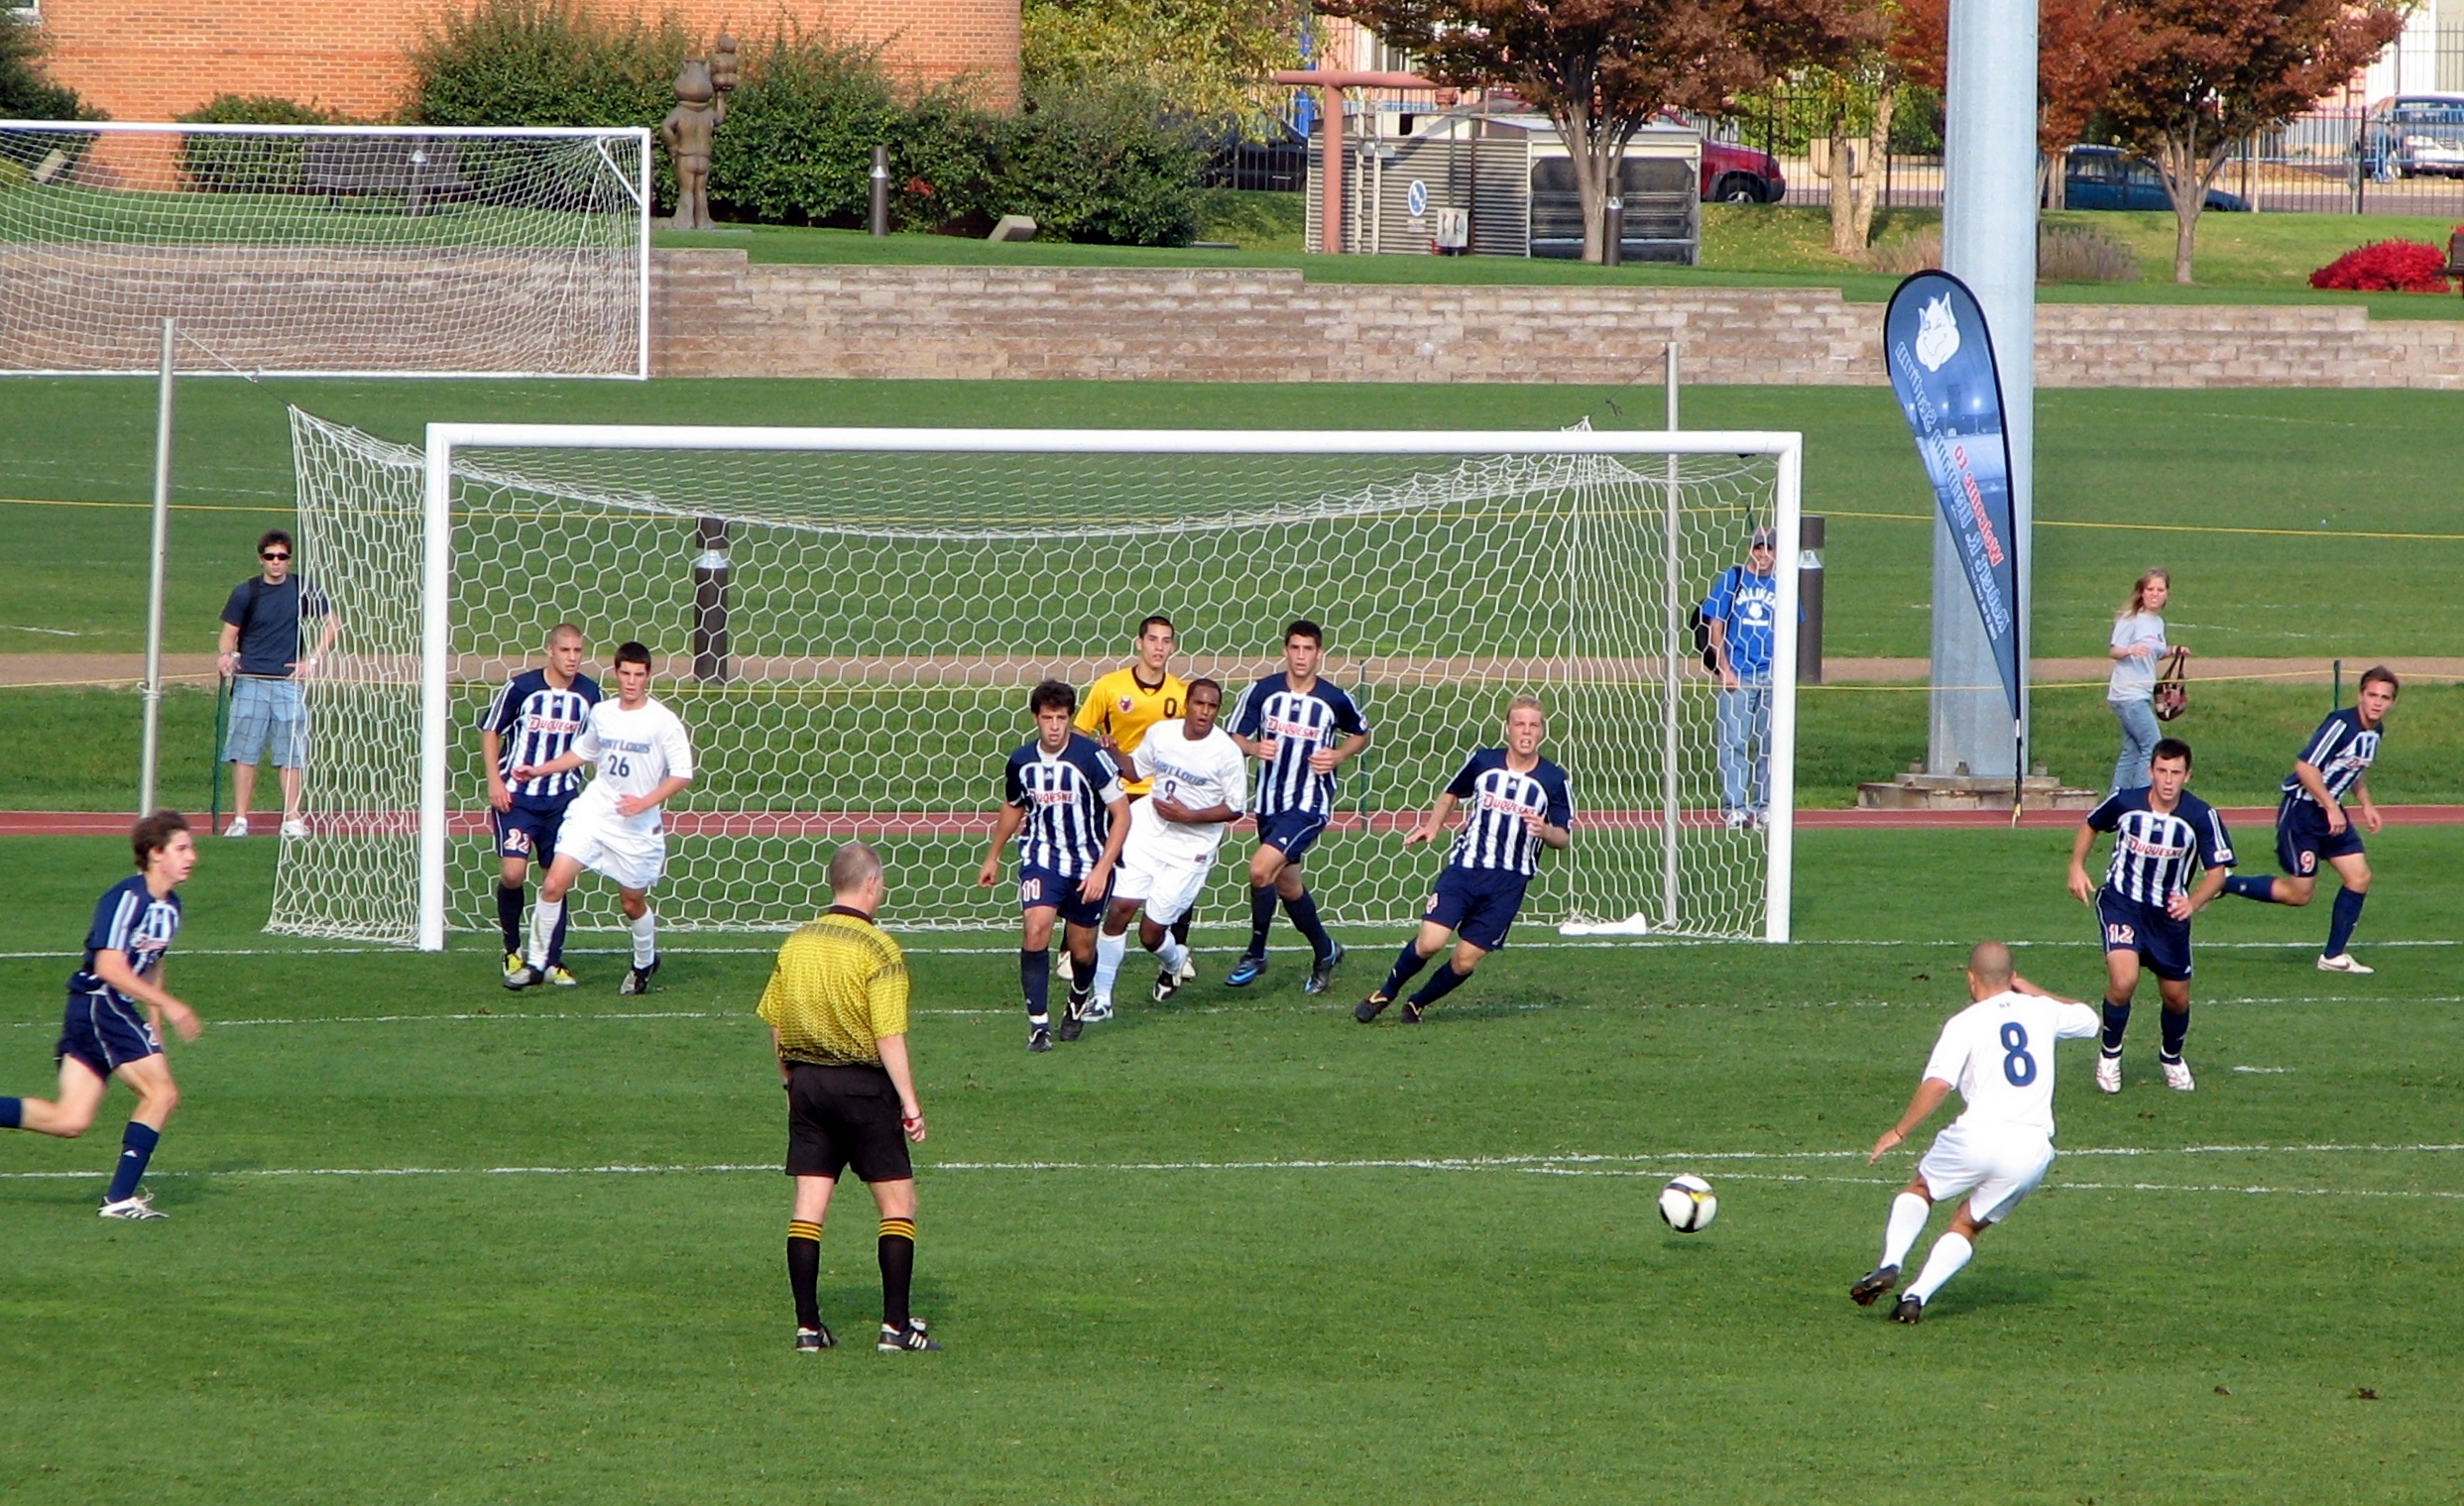 File:Billiken soccer.jpg - Wikipedia